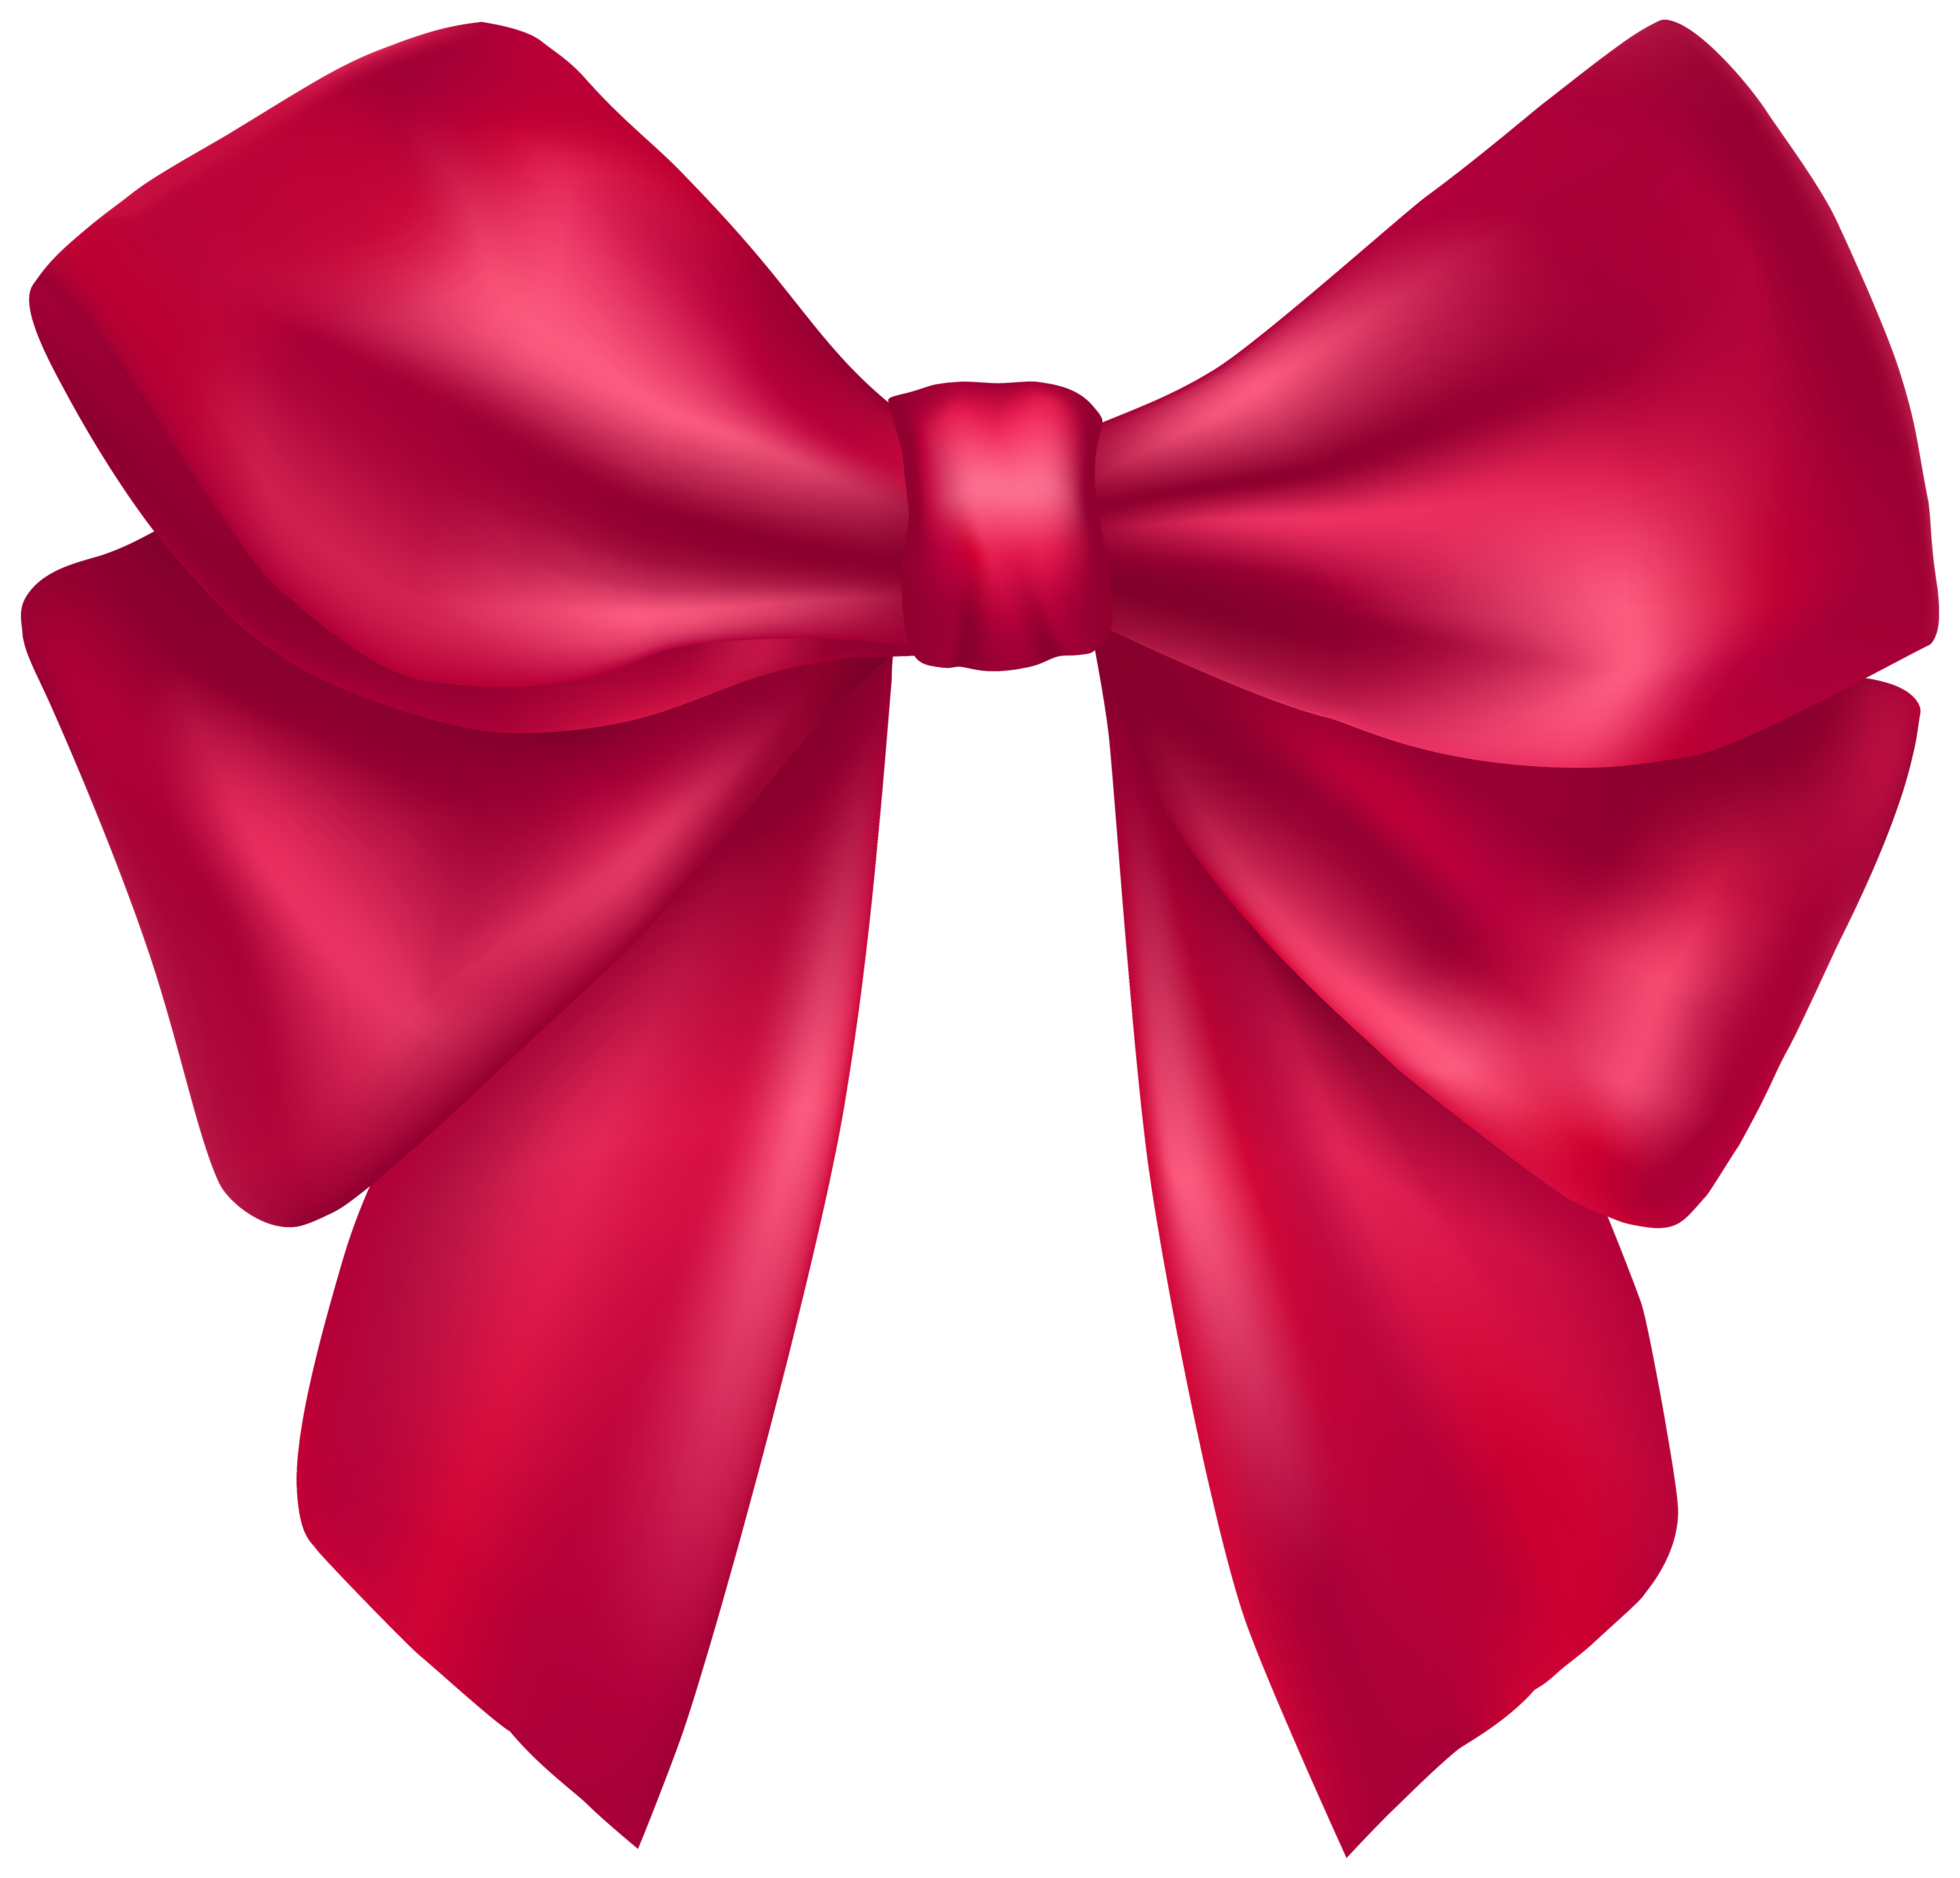 Pink bow tie png. Dark clipart best web